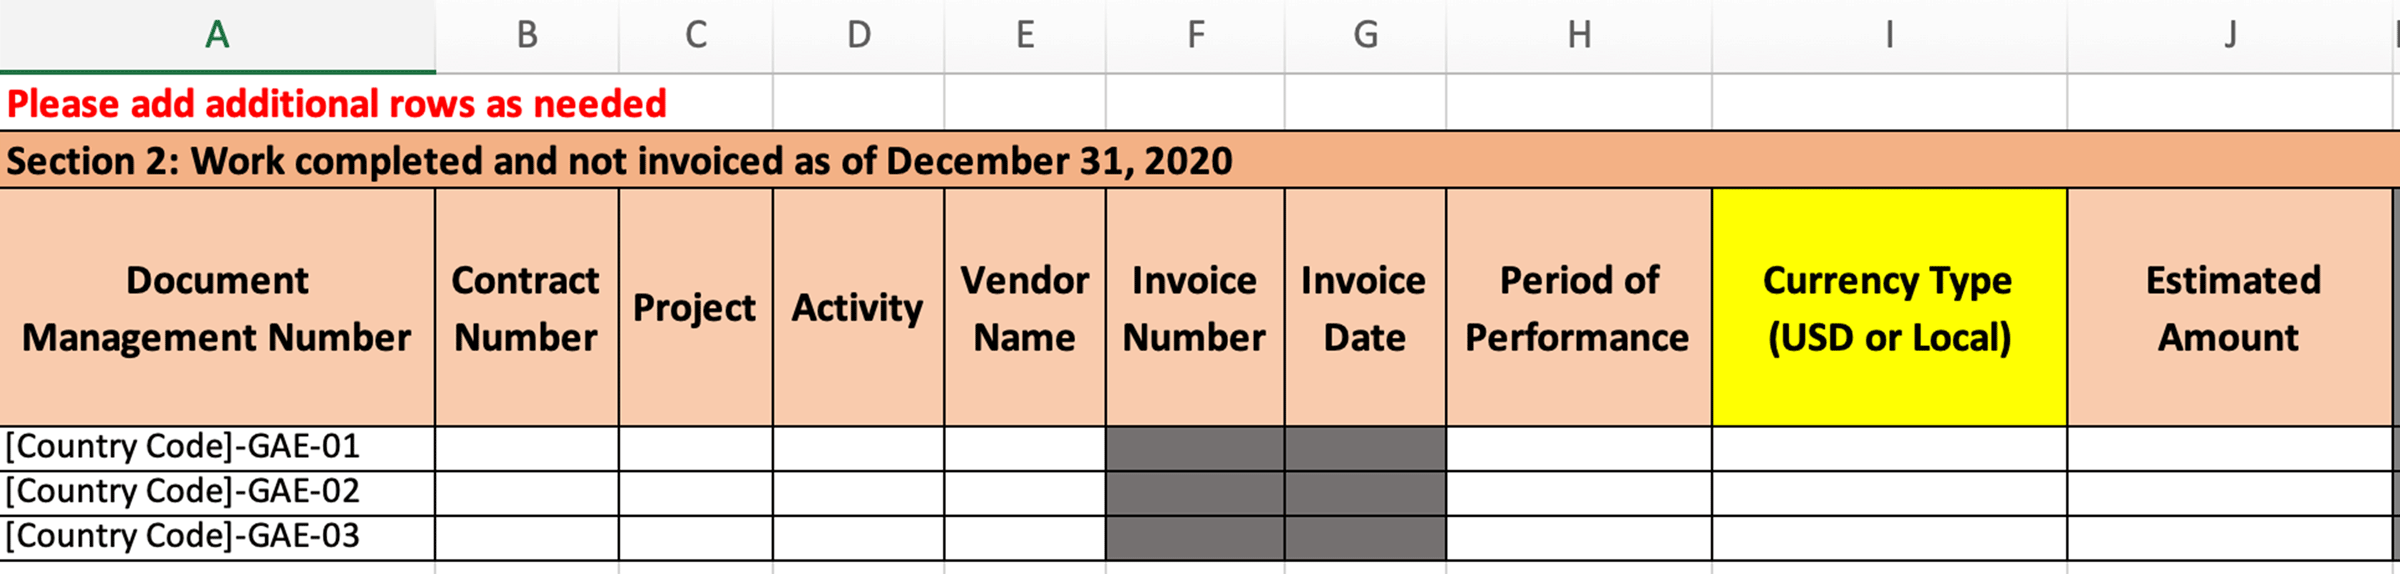 Invoice Number and Invoice Date columns